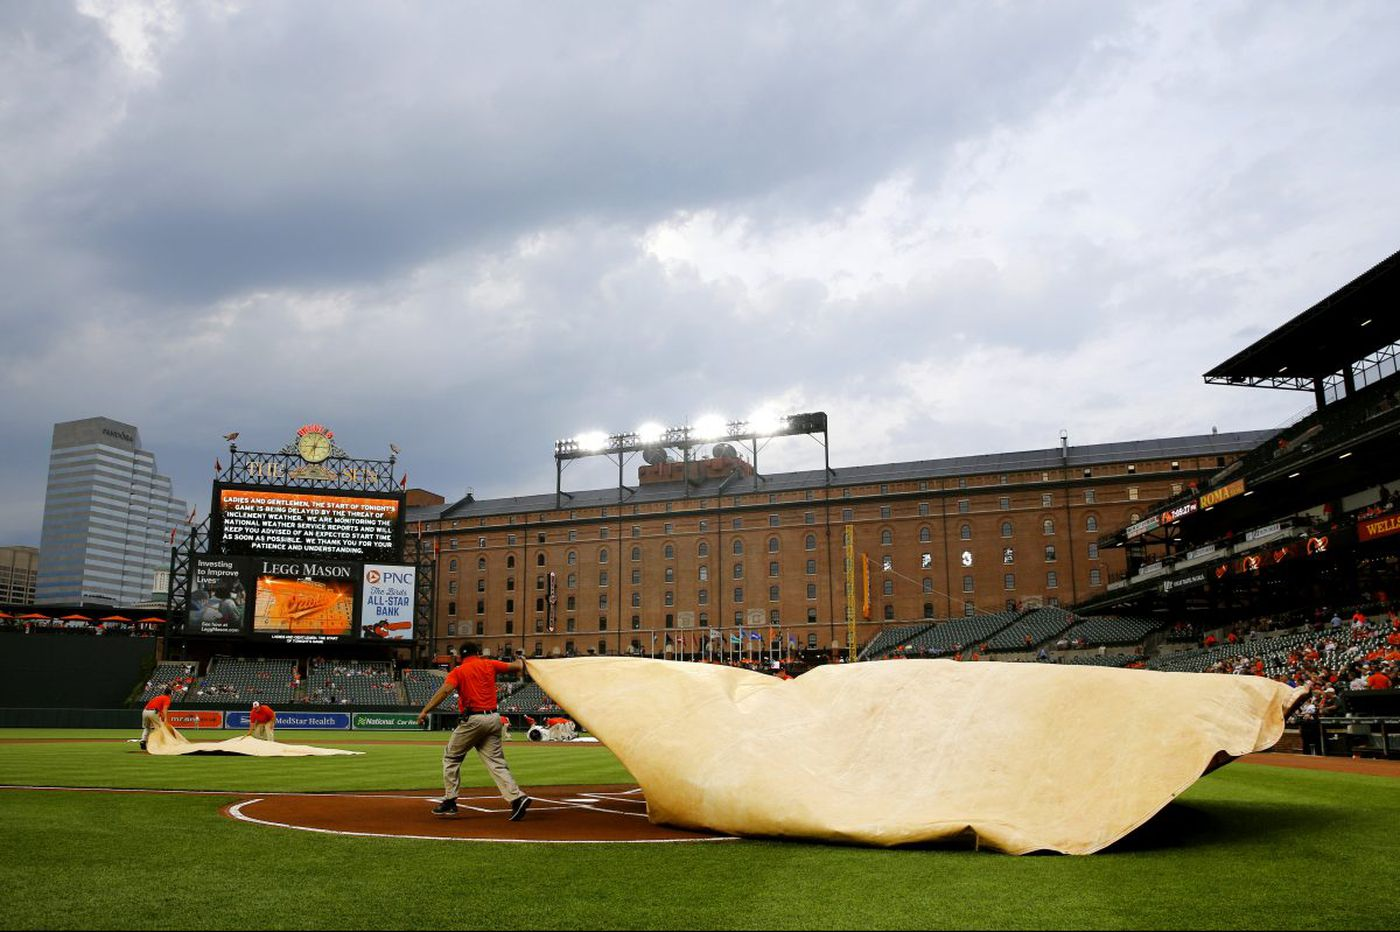 Phillies to play at 12:05 today, if rain stops | Extra Innings